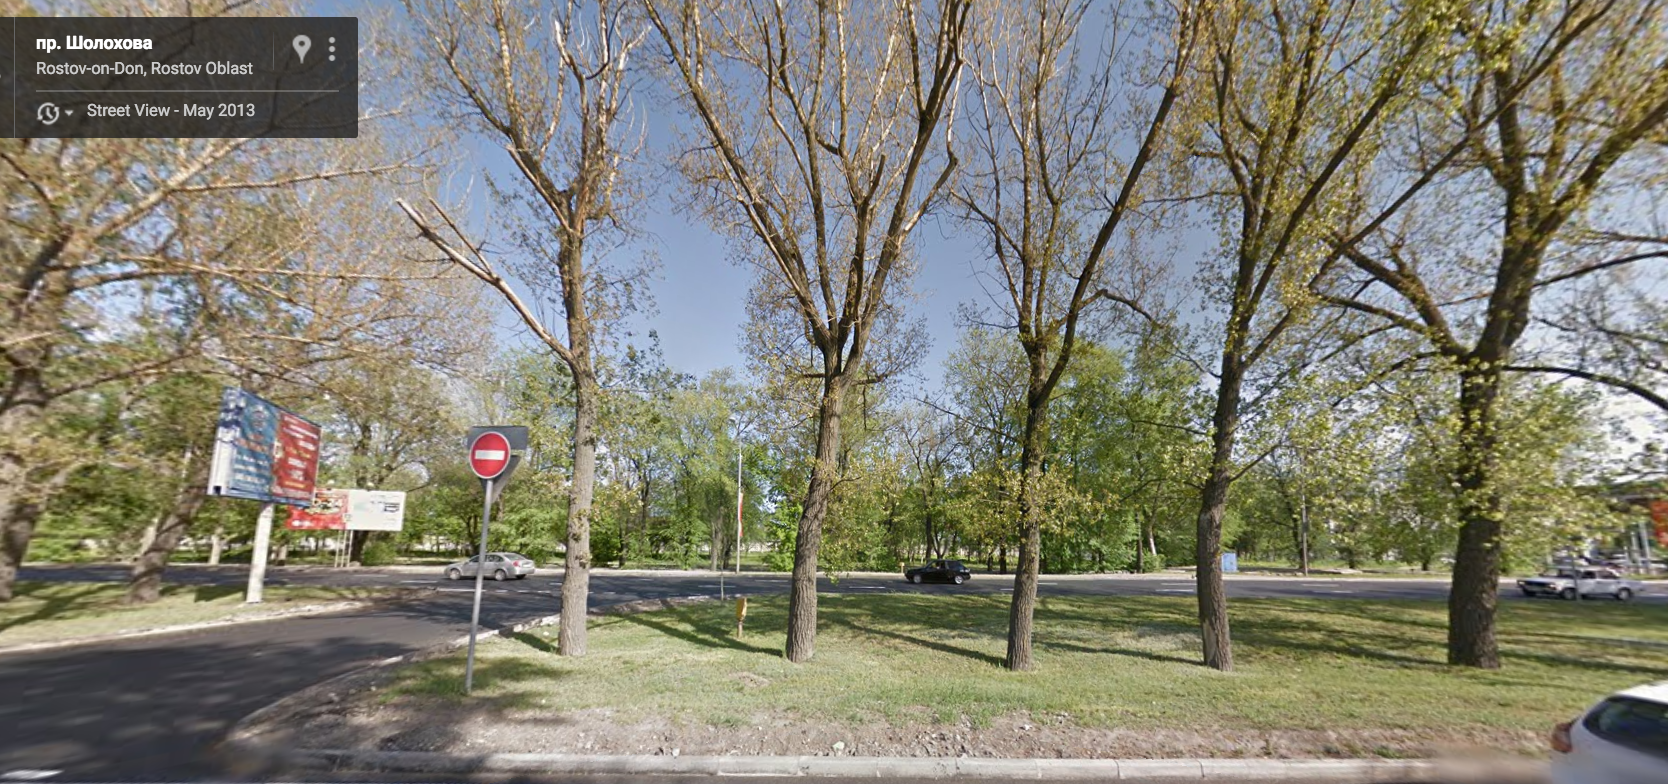 Google street level view from road parallel to runway 22 in Rostov-on-Don, Russia.